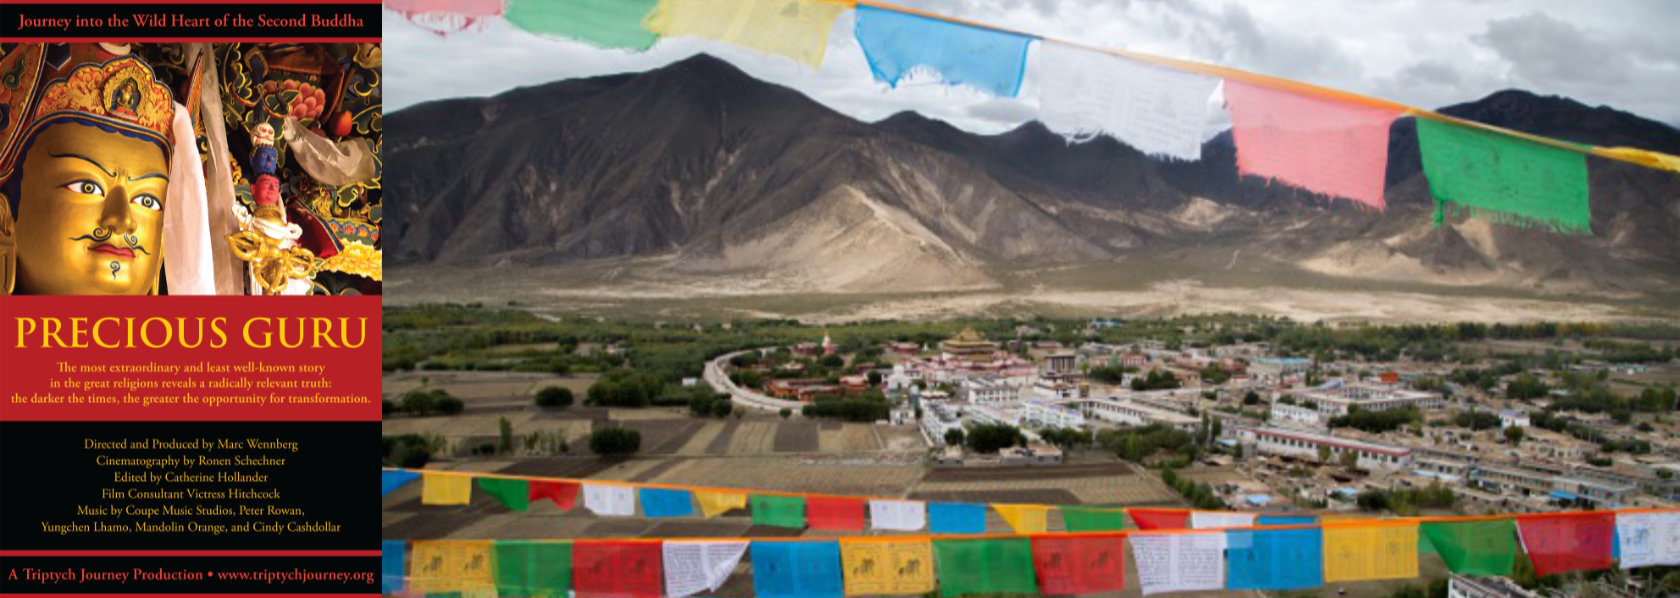 Landscape of mountain with temple and buddhist flags in foreground - Precious Guru - THIS Buddhist Film Festival